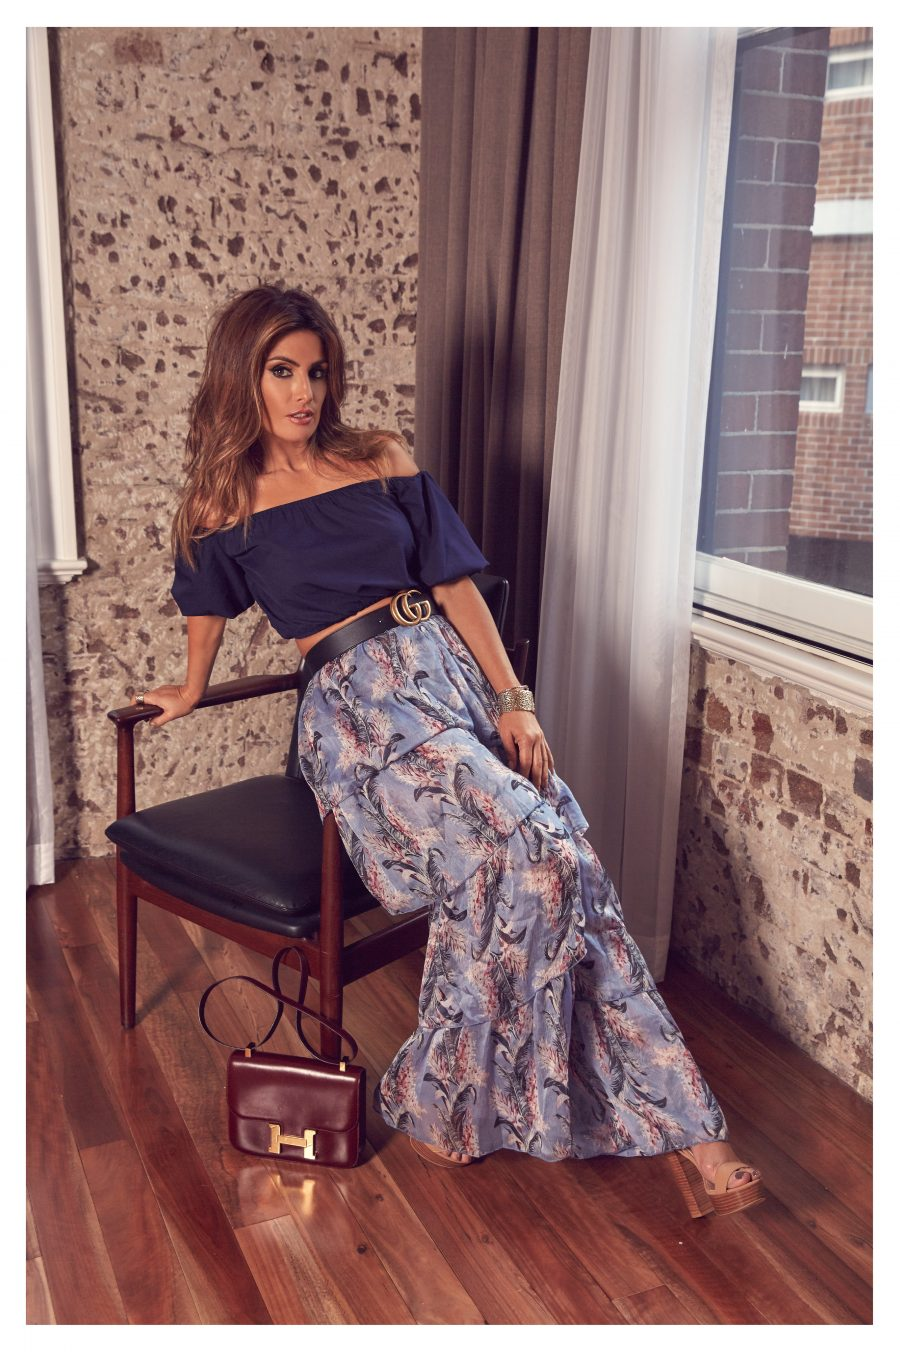 See Need Want Ada Nicodemou Fashion Feature 14